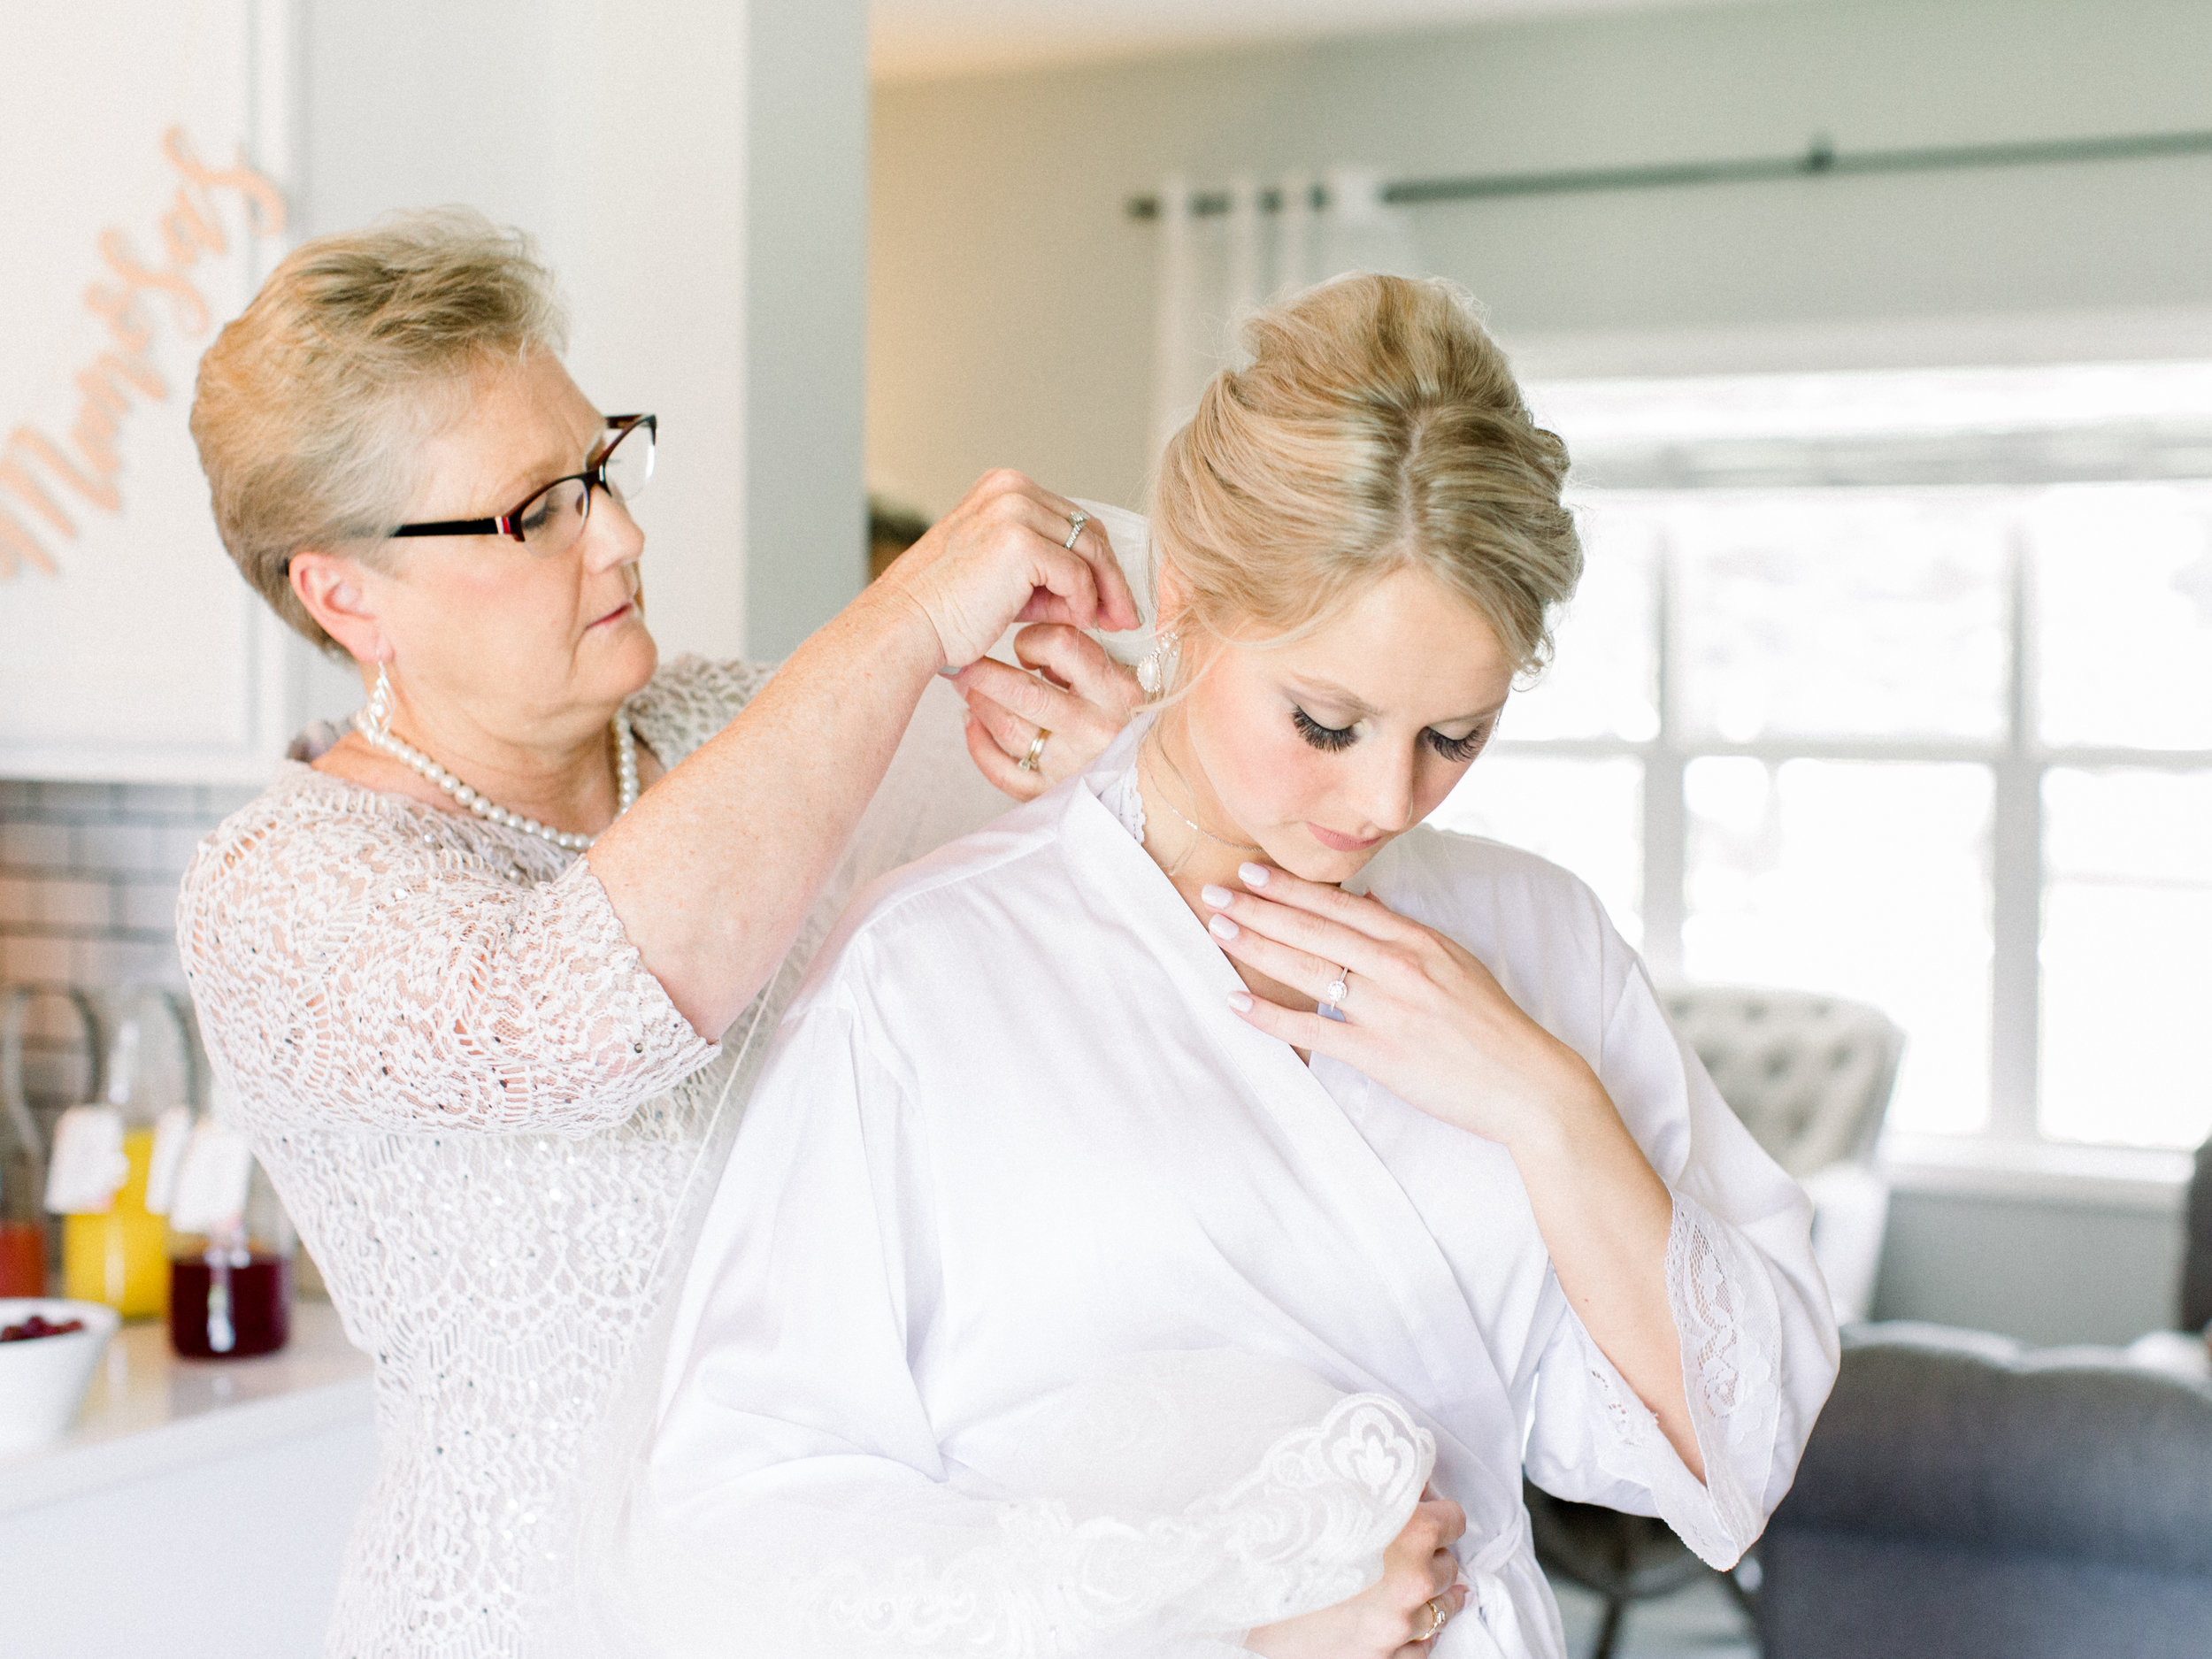 Cupp+Wedding+Getting+Ready+Girls-83.jpg